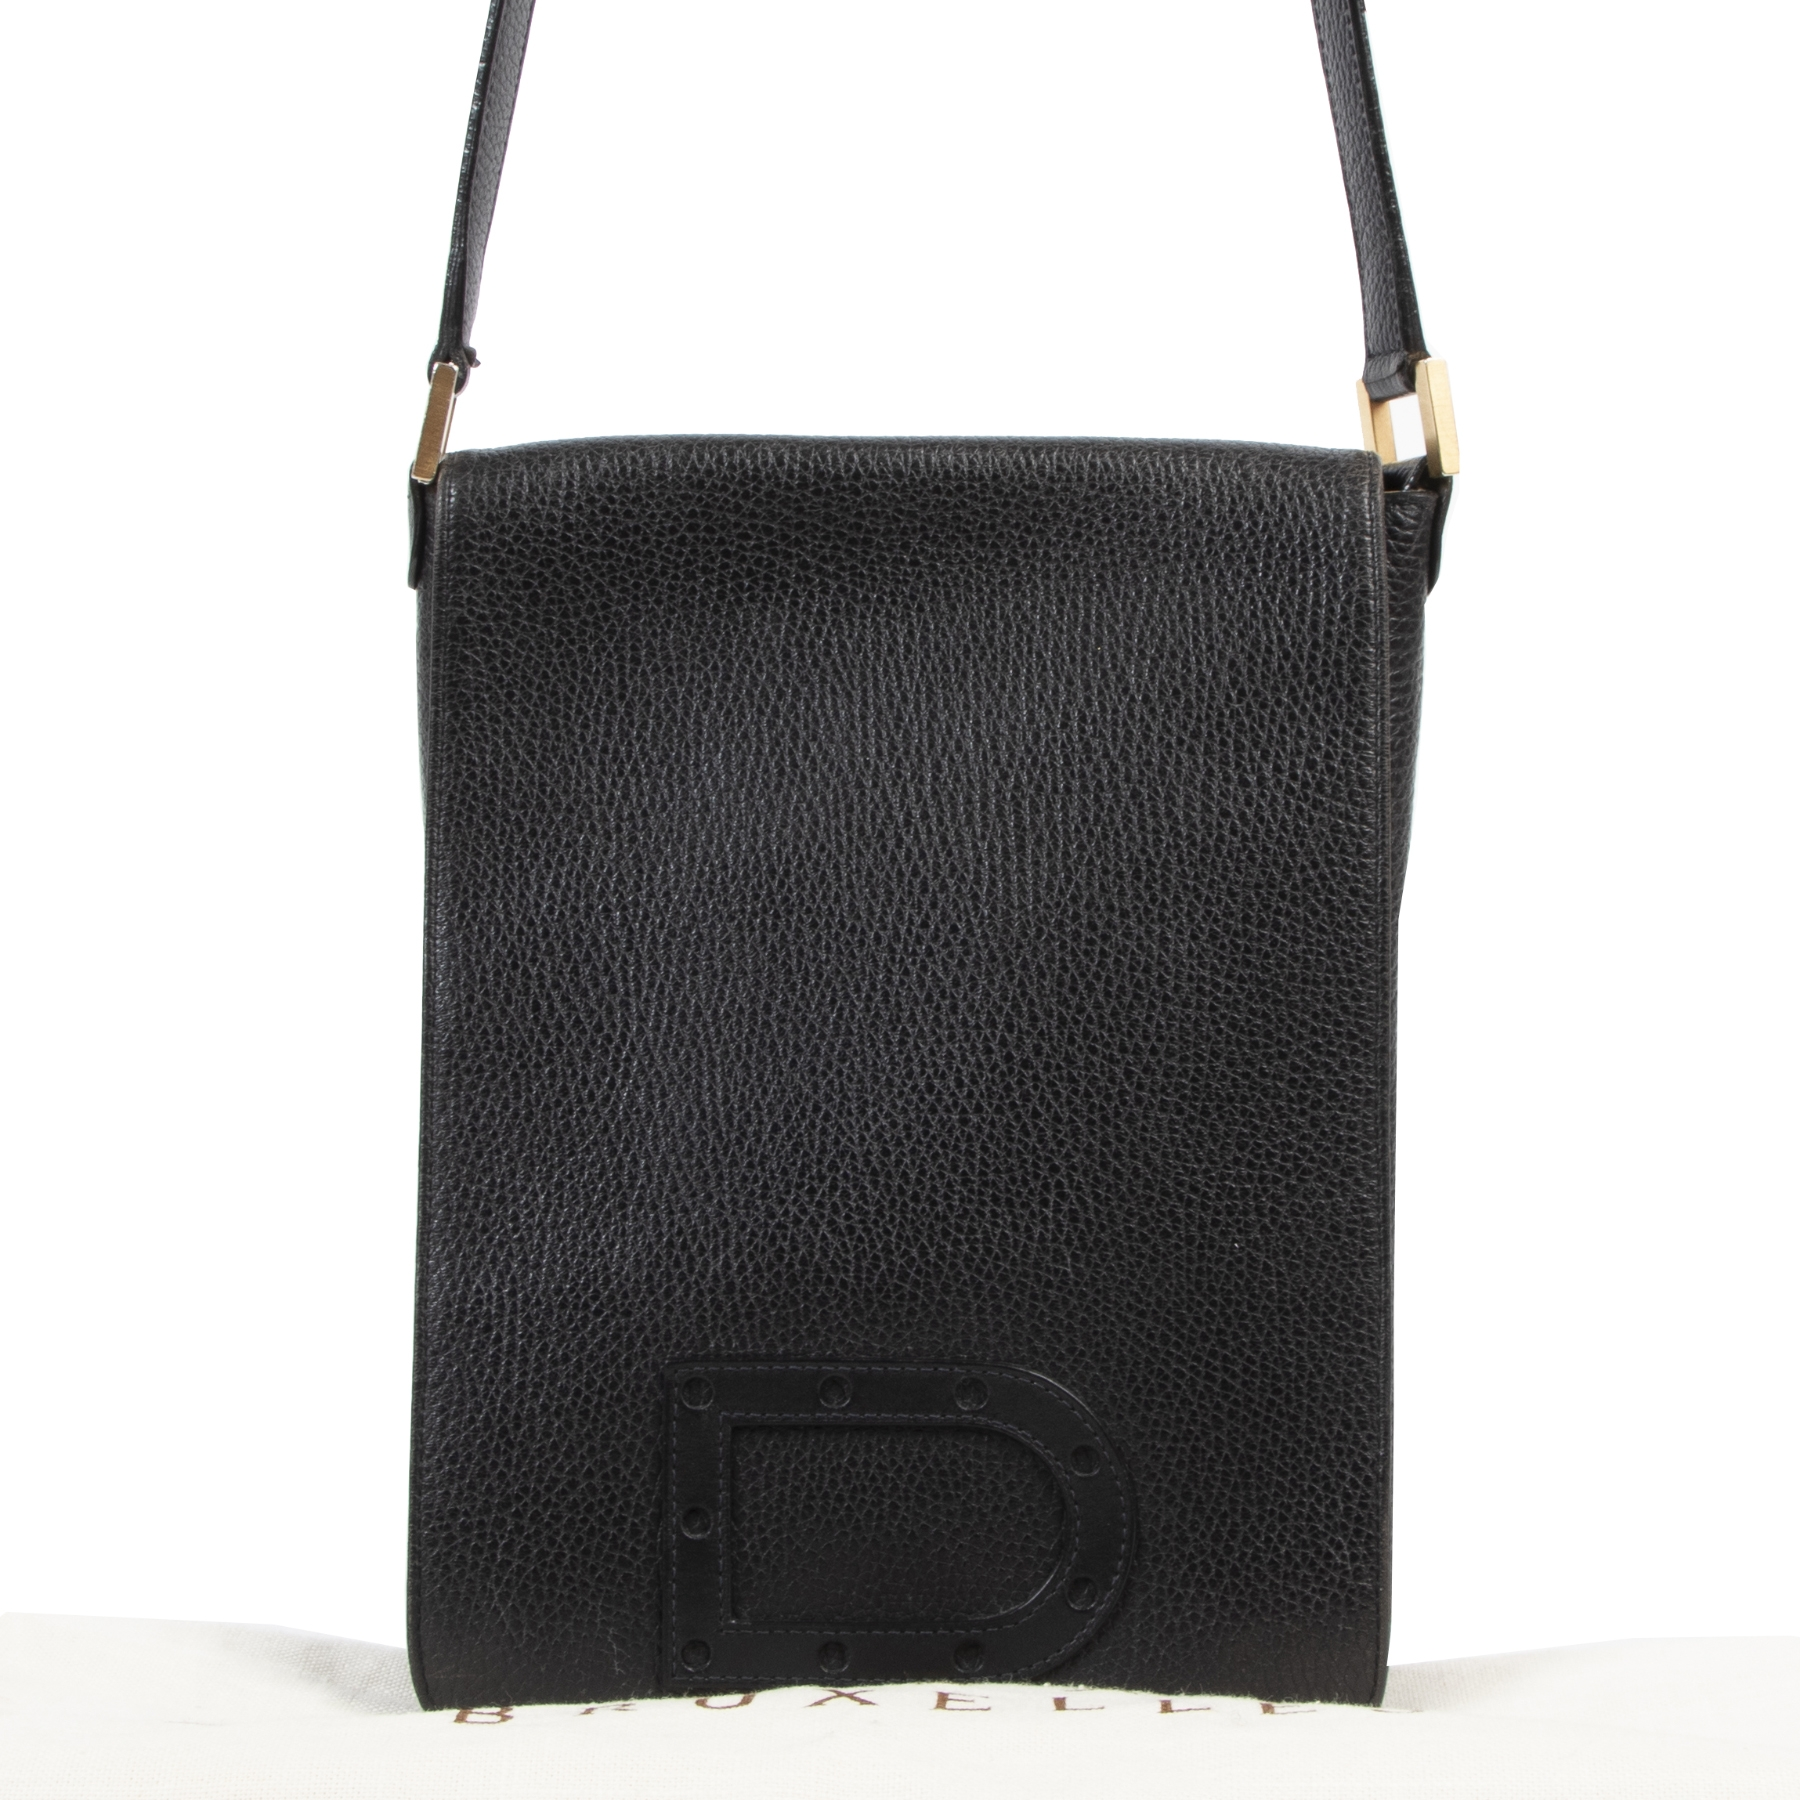 Delvaux Black Leather Louise Baudrier PM Bag